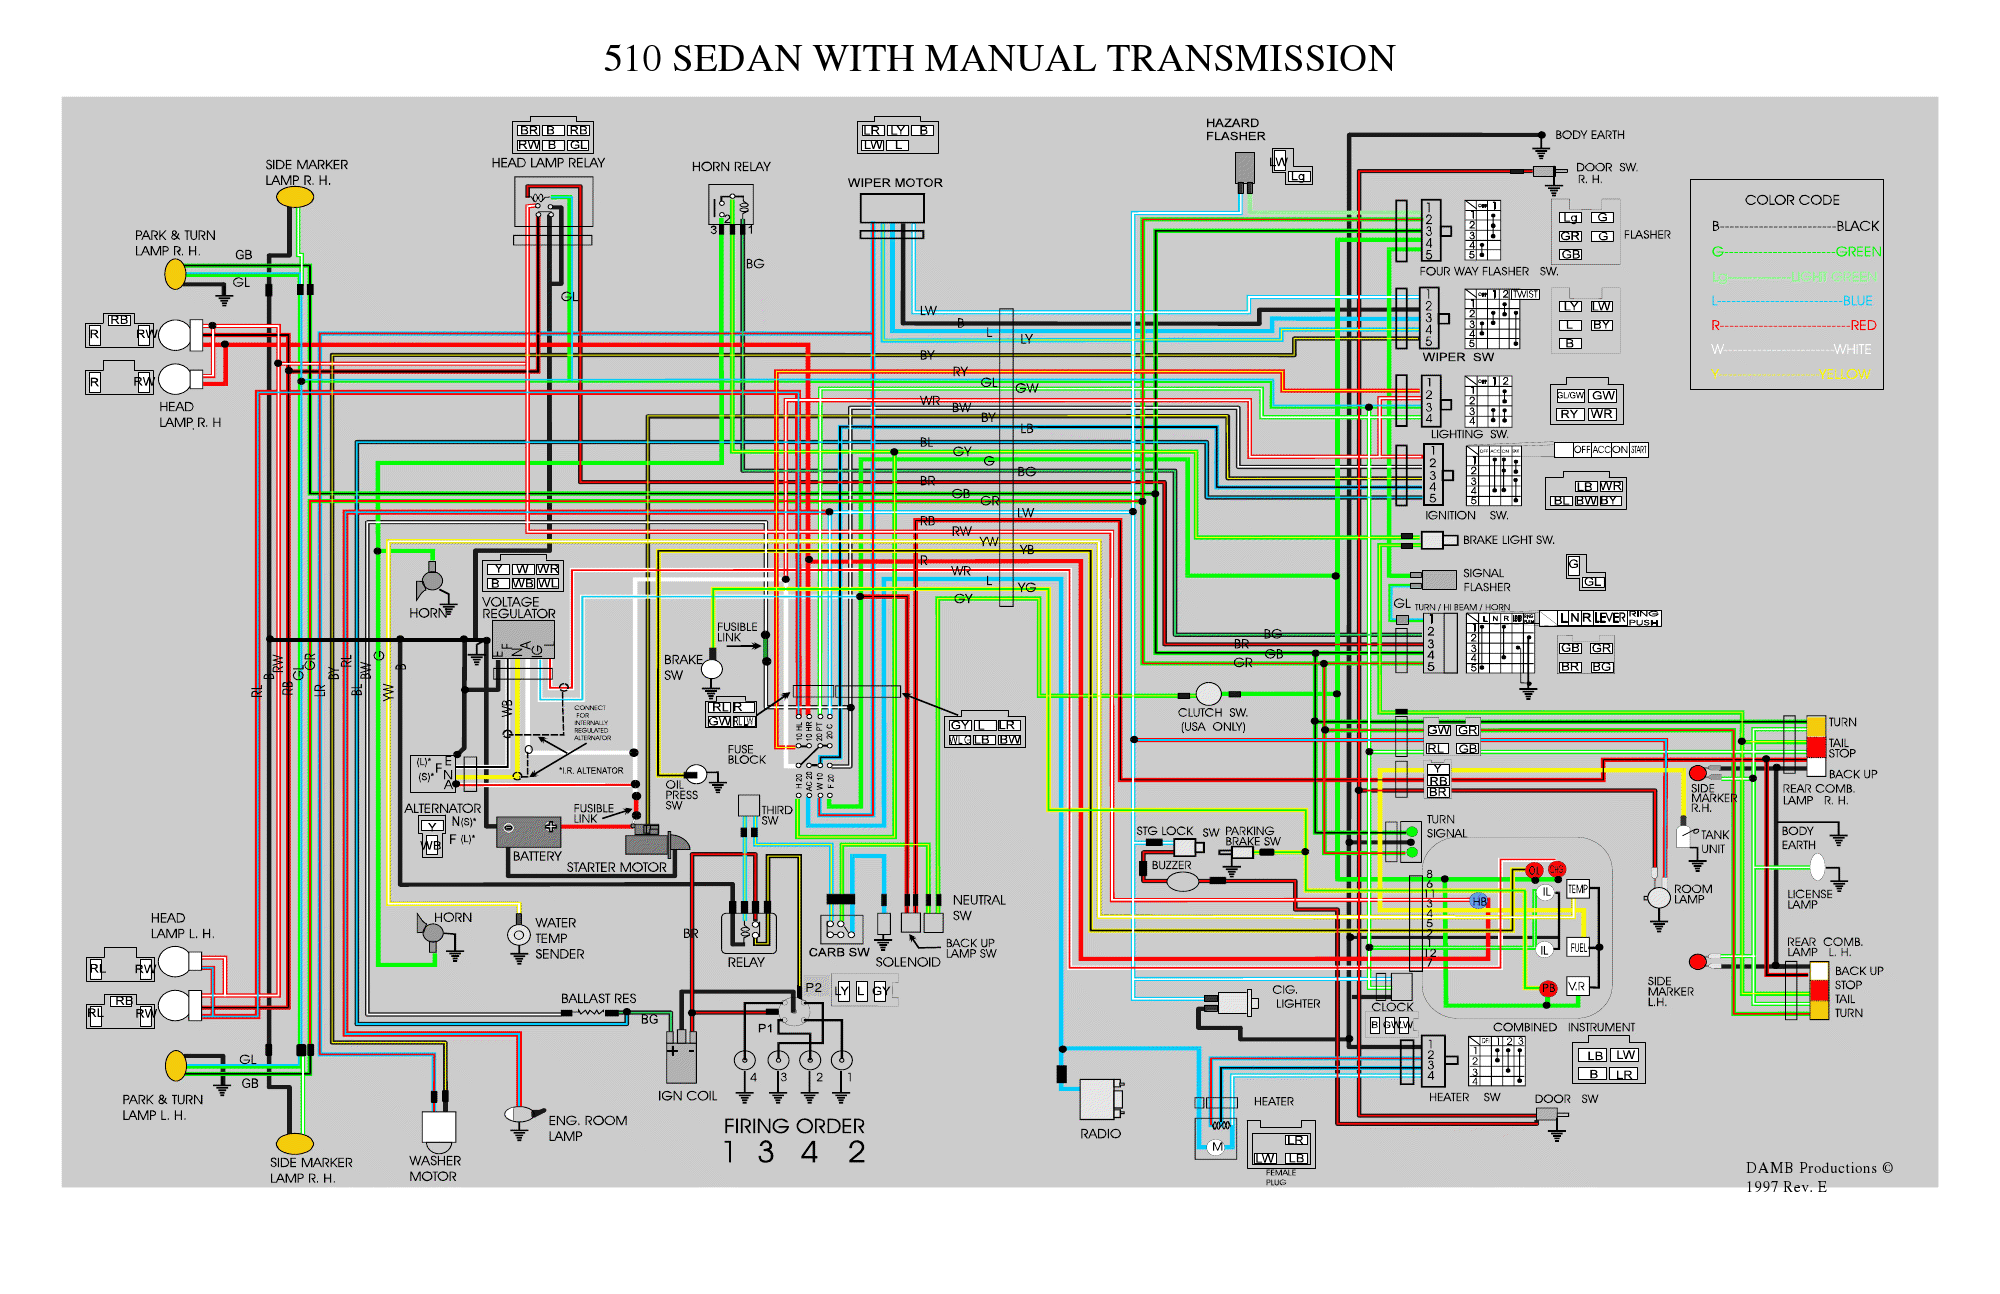 datsun_510_wiring_diagram?resize=665%2C430 ez wiring 21 circuit harness diagram ez wiring harness at gsmx.co